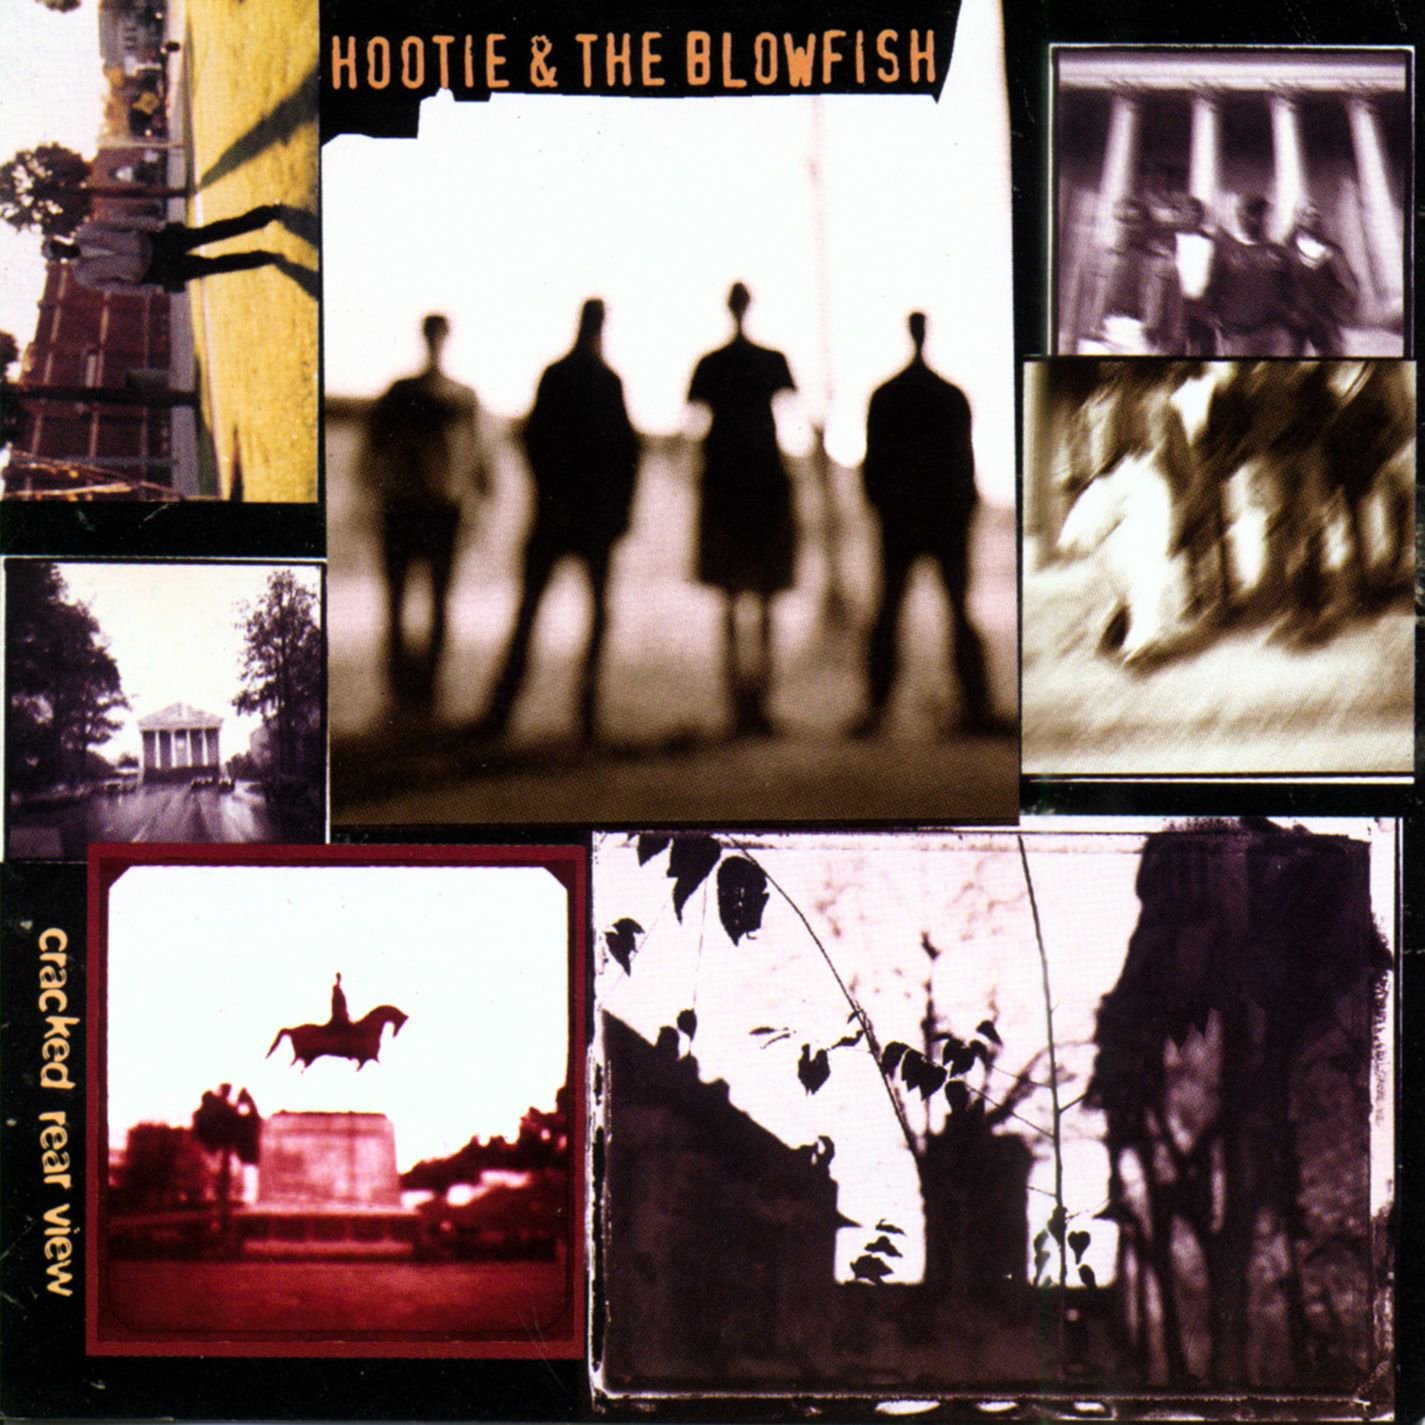 CD : Hootie & the Blowfish - Cracked Rear View (CD)